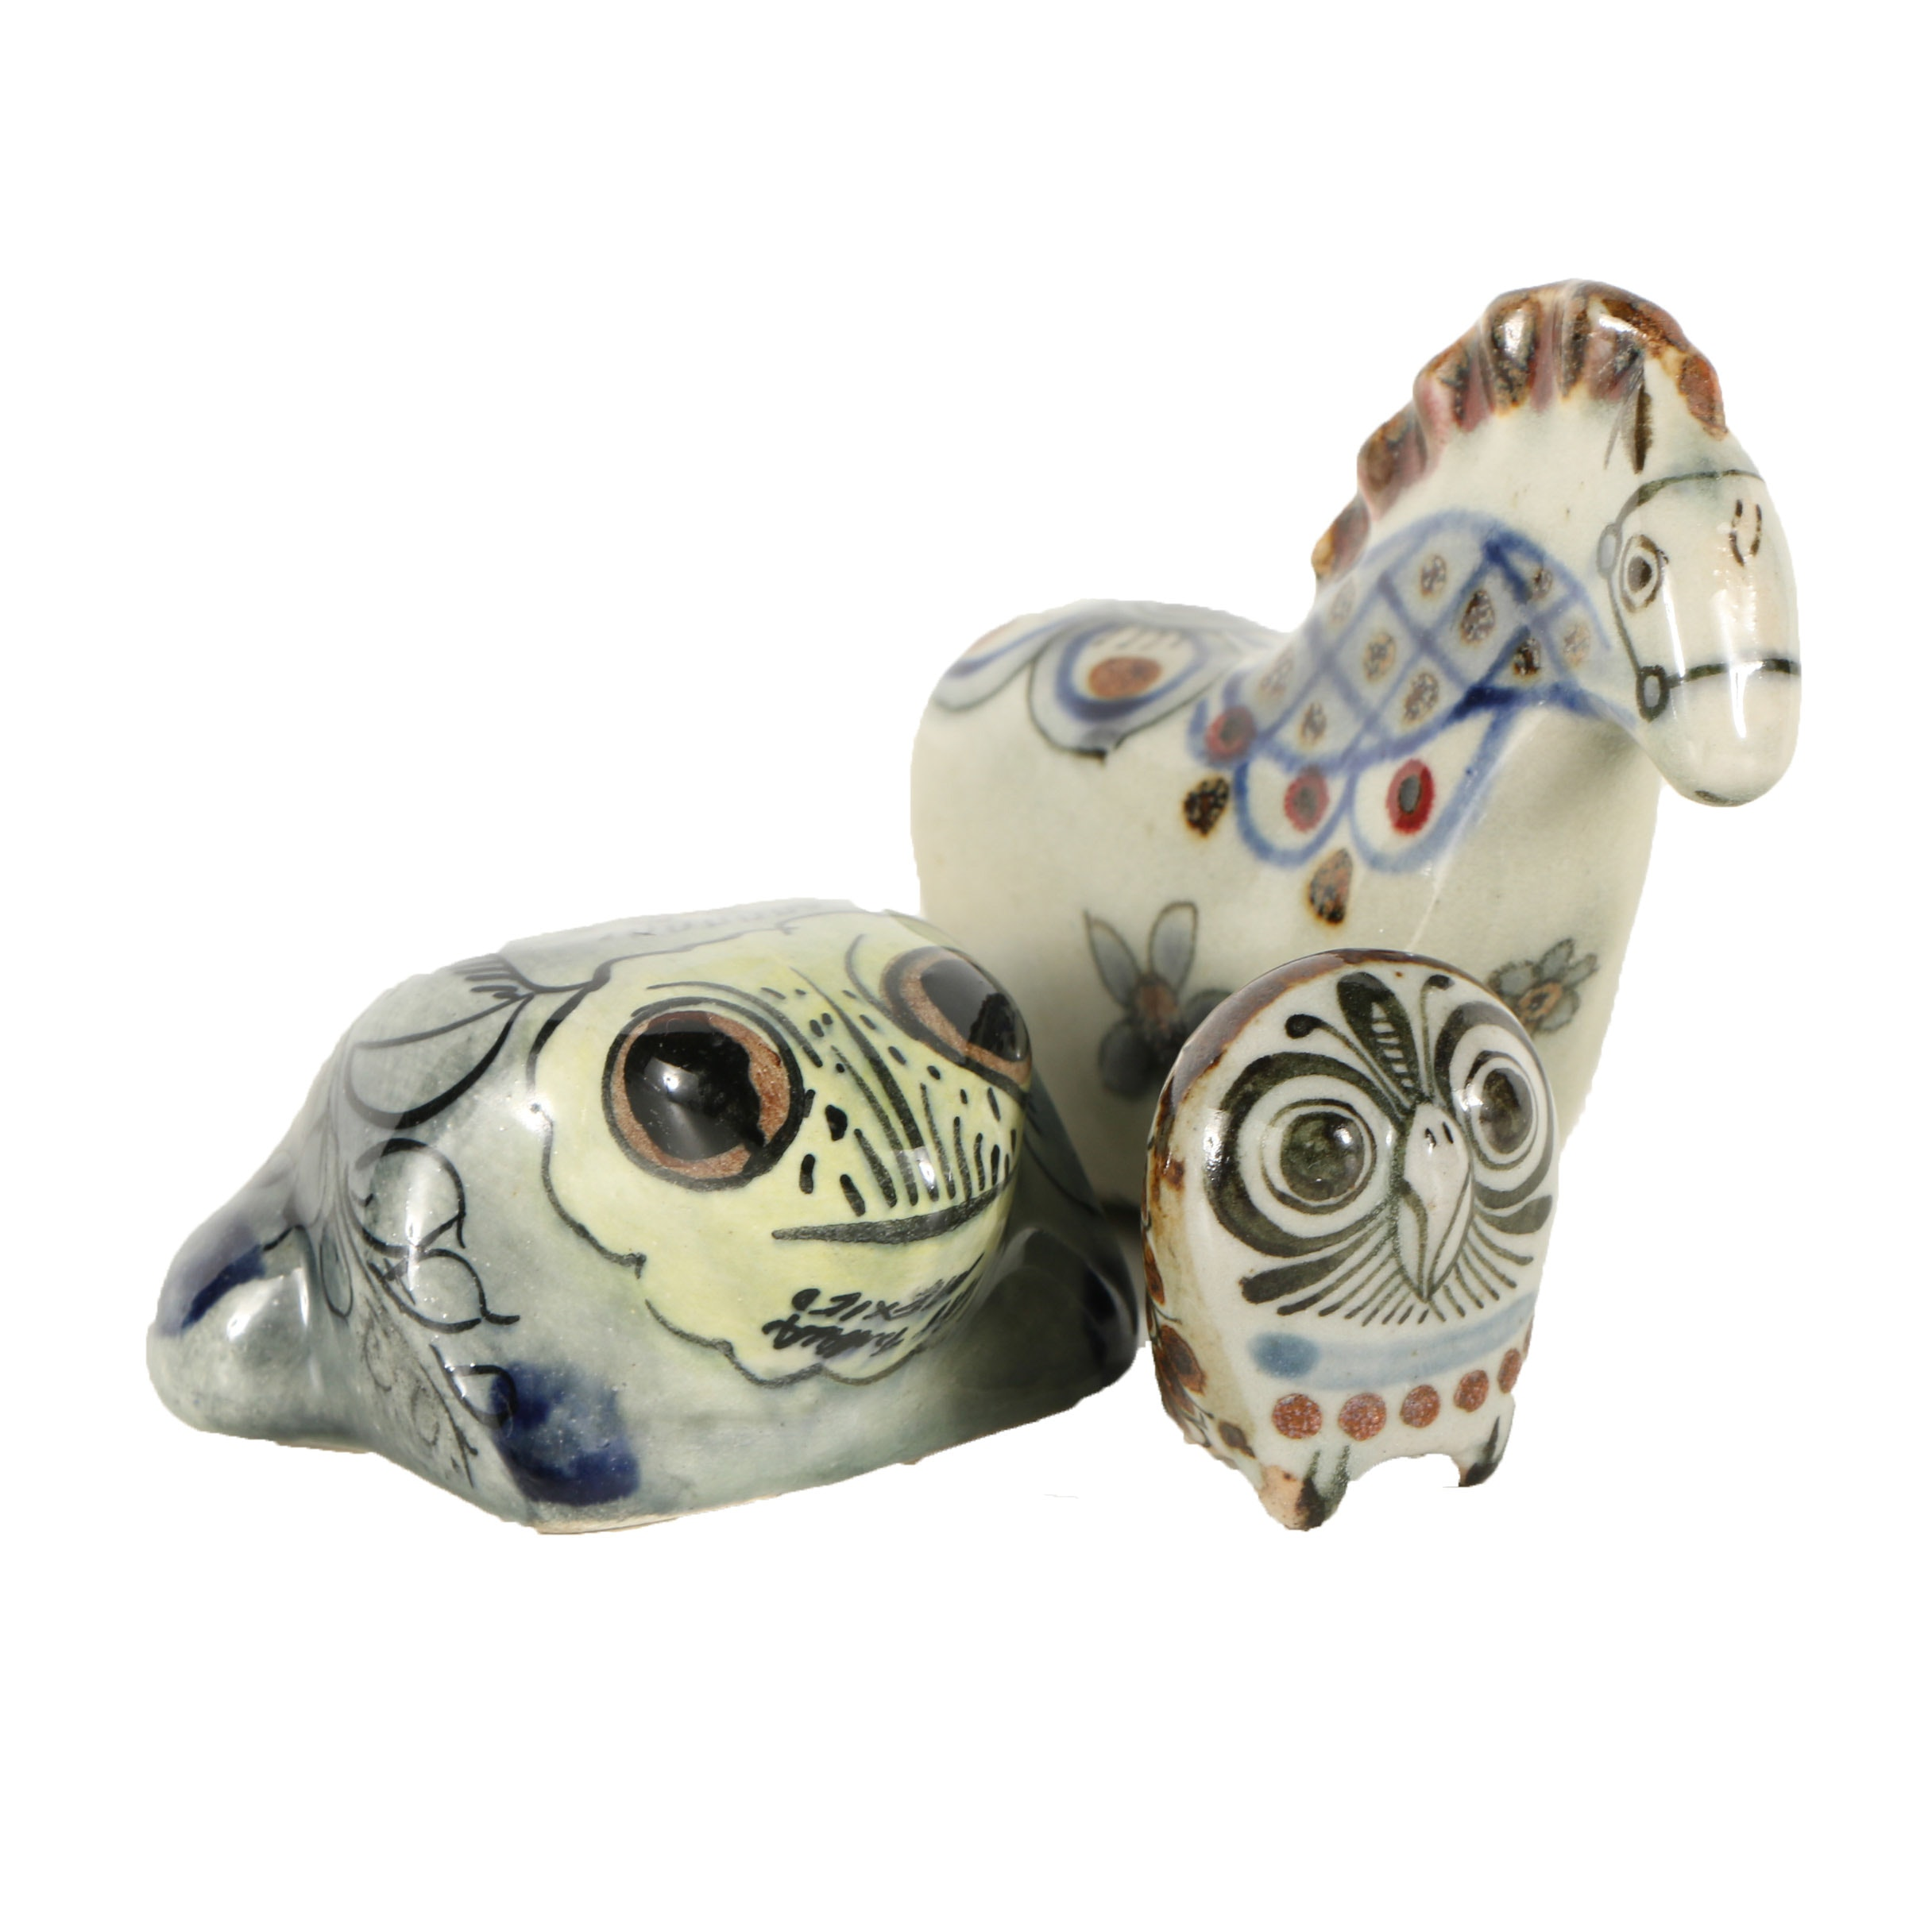 Mexican Ceramic Figurines